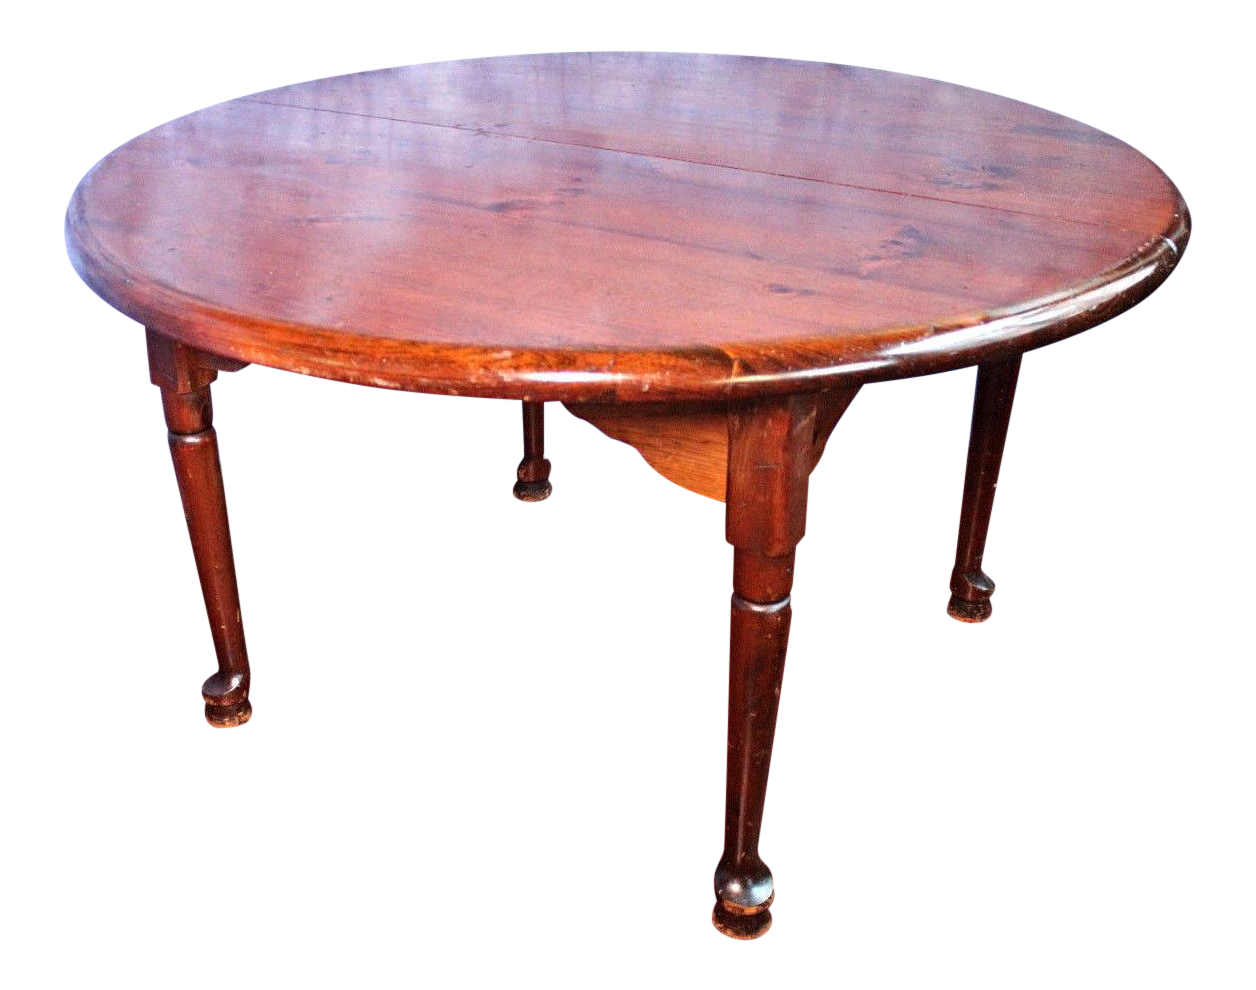 Antique Queen Anne Style Round Extension Dining Table  : antique queen anne style round extension dining table 3406aspectfitampwidth640ampheight640 from www.chairish.com size 640 x 640 jpeg 27kB